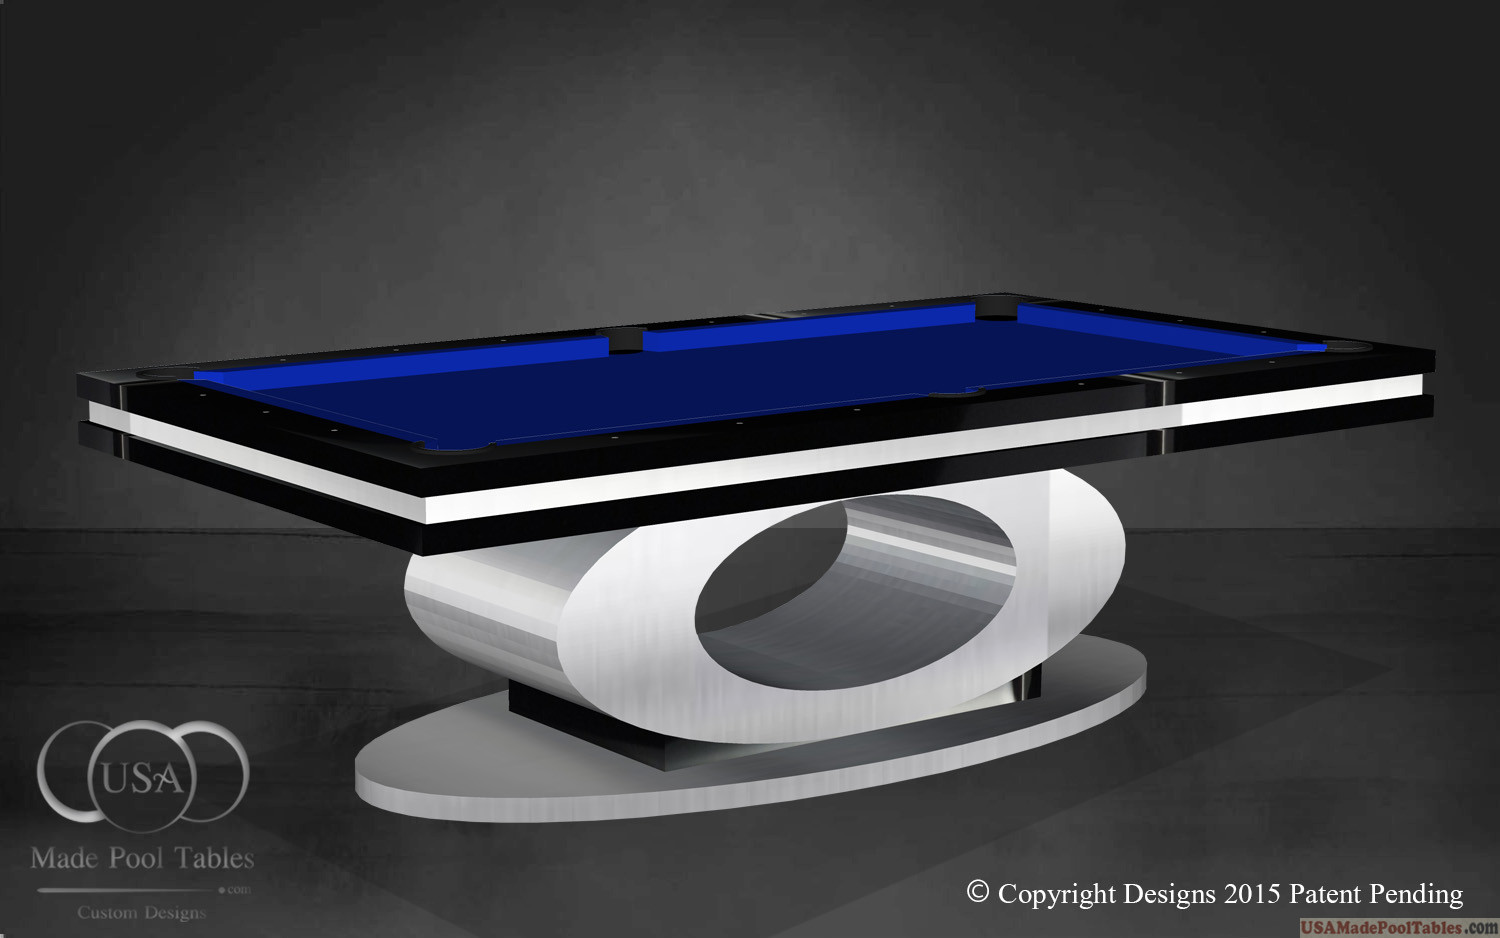 CUSTOM POOL TABLES MODERN POOL TABLES CONTEMPORARY POOL TABLE - Pool table moving equipment